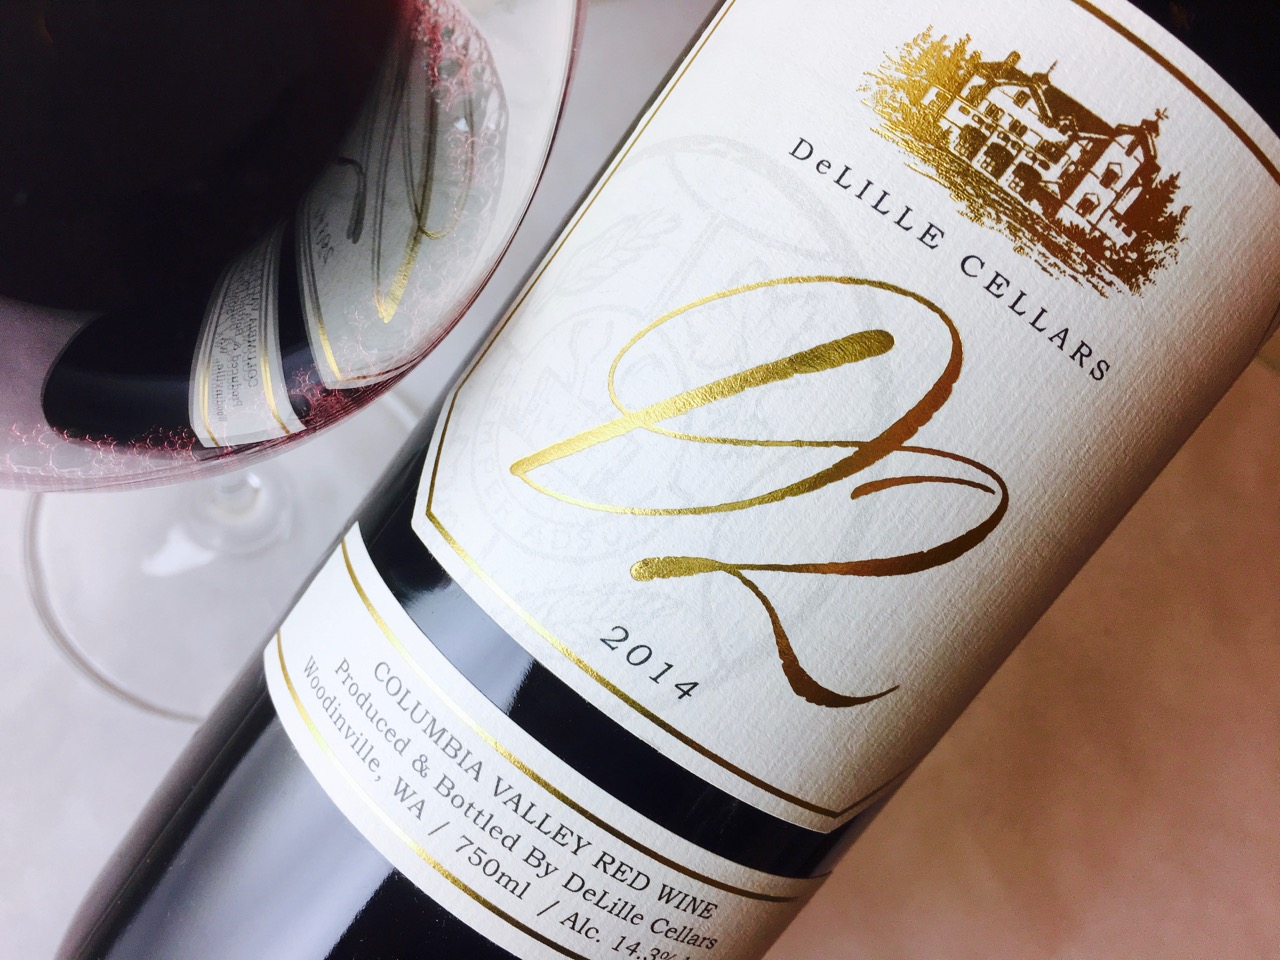 2014 DeLille Cellars Red Blend D2 Columbia Valley